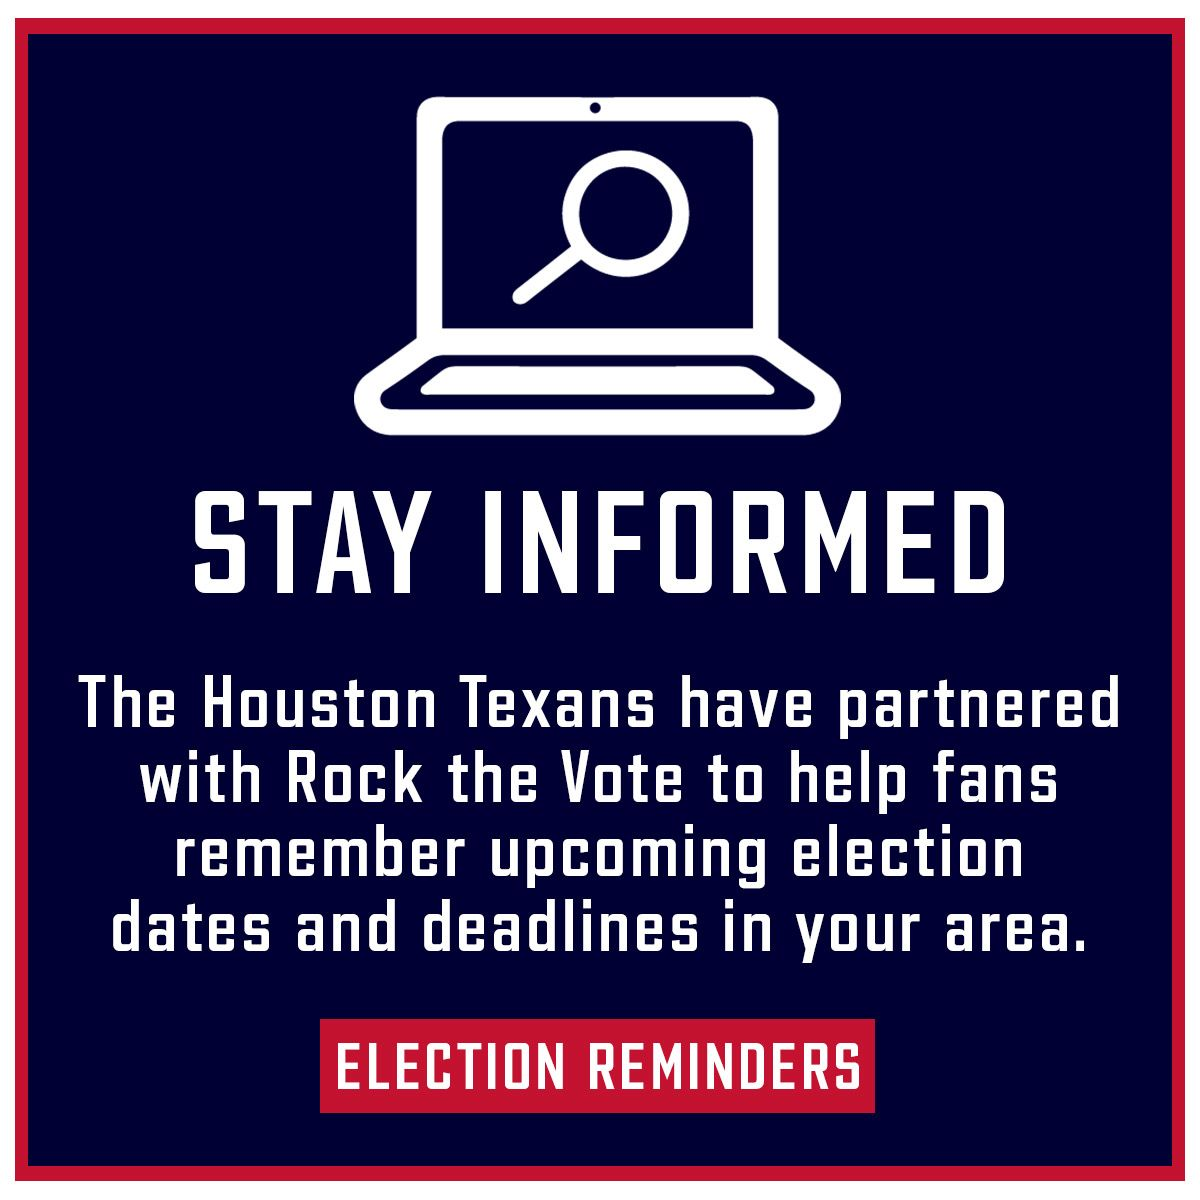 Voters Resources. The Houston Texans have teamed up with Rock the Vote to encourage all Texans fans to vote this election season. Learn more.